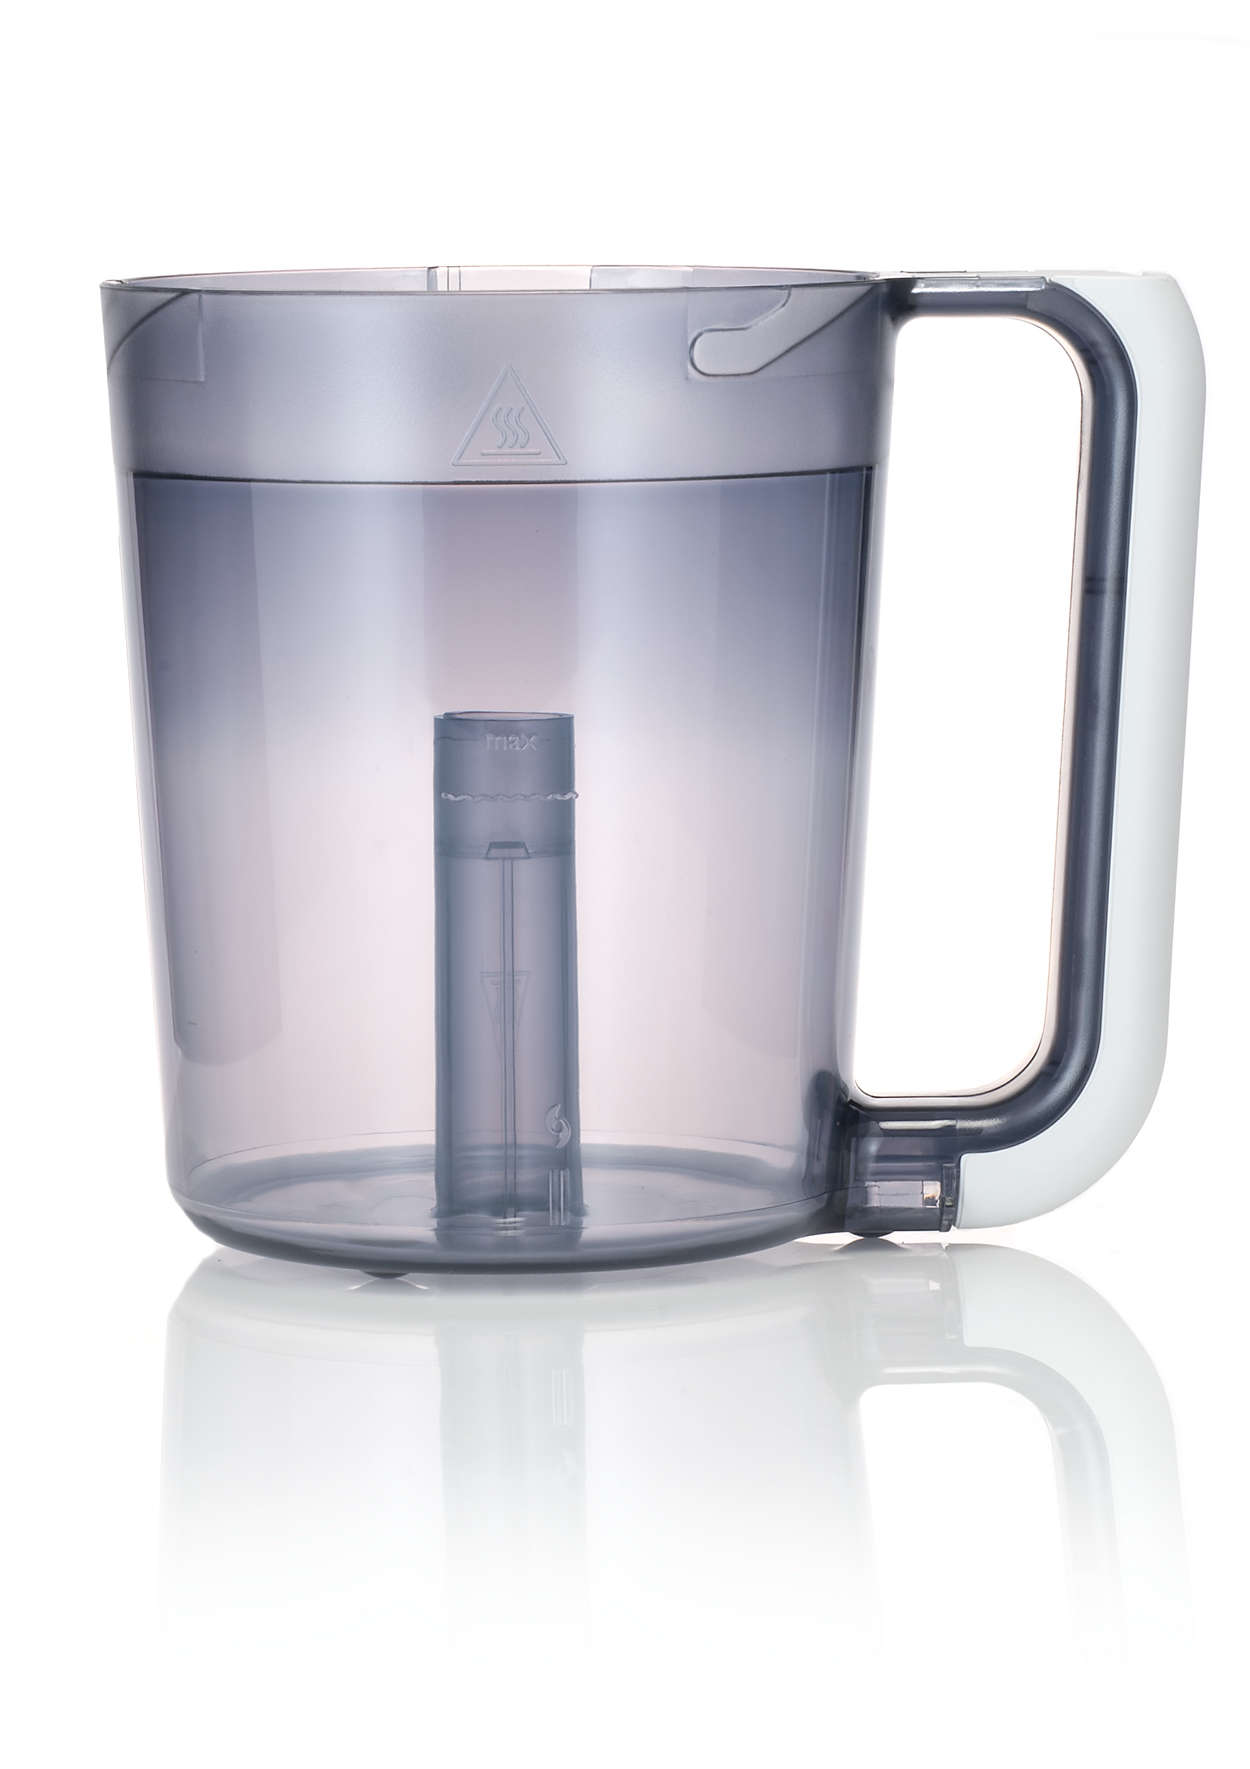 Part of the combined steamer and blender